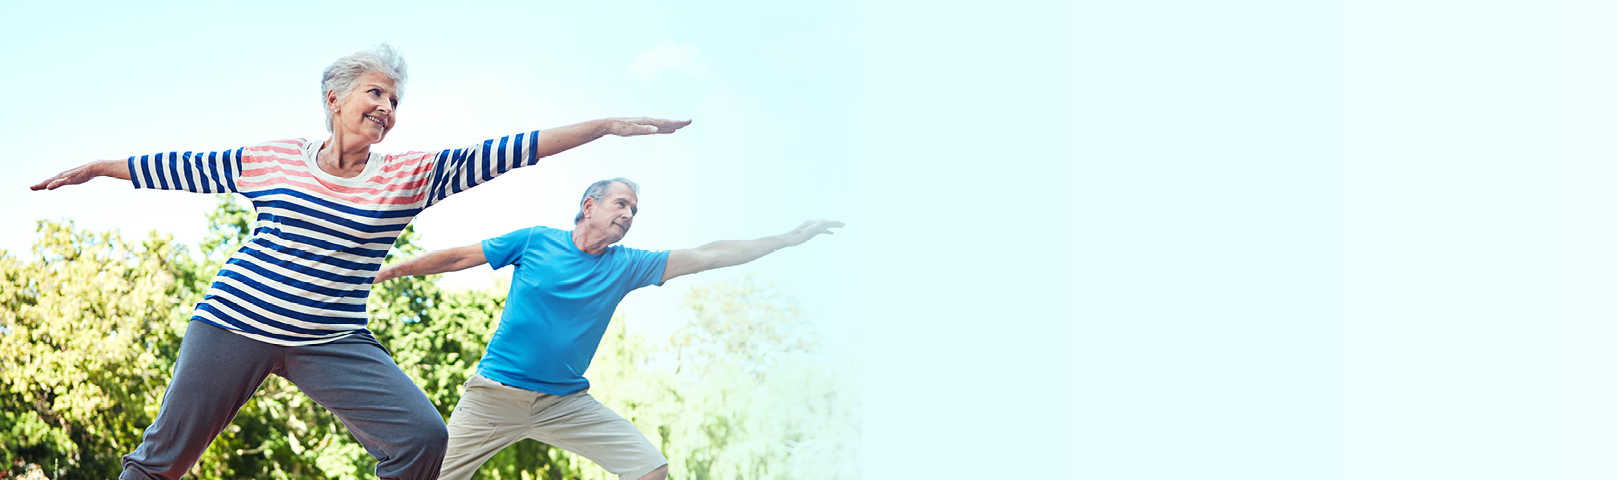 a couple enjoys exercising together despite balance problems knowing their family understands